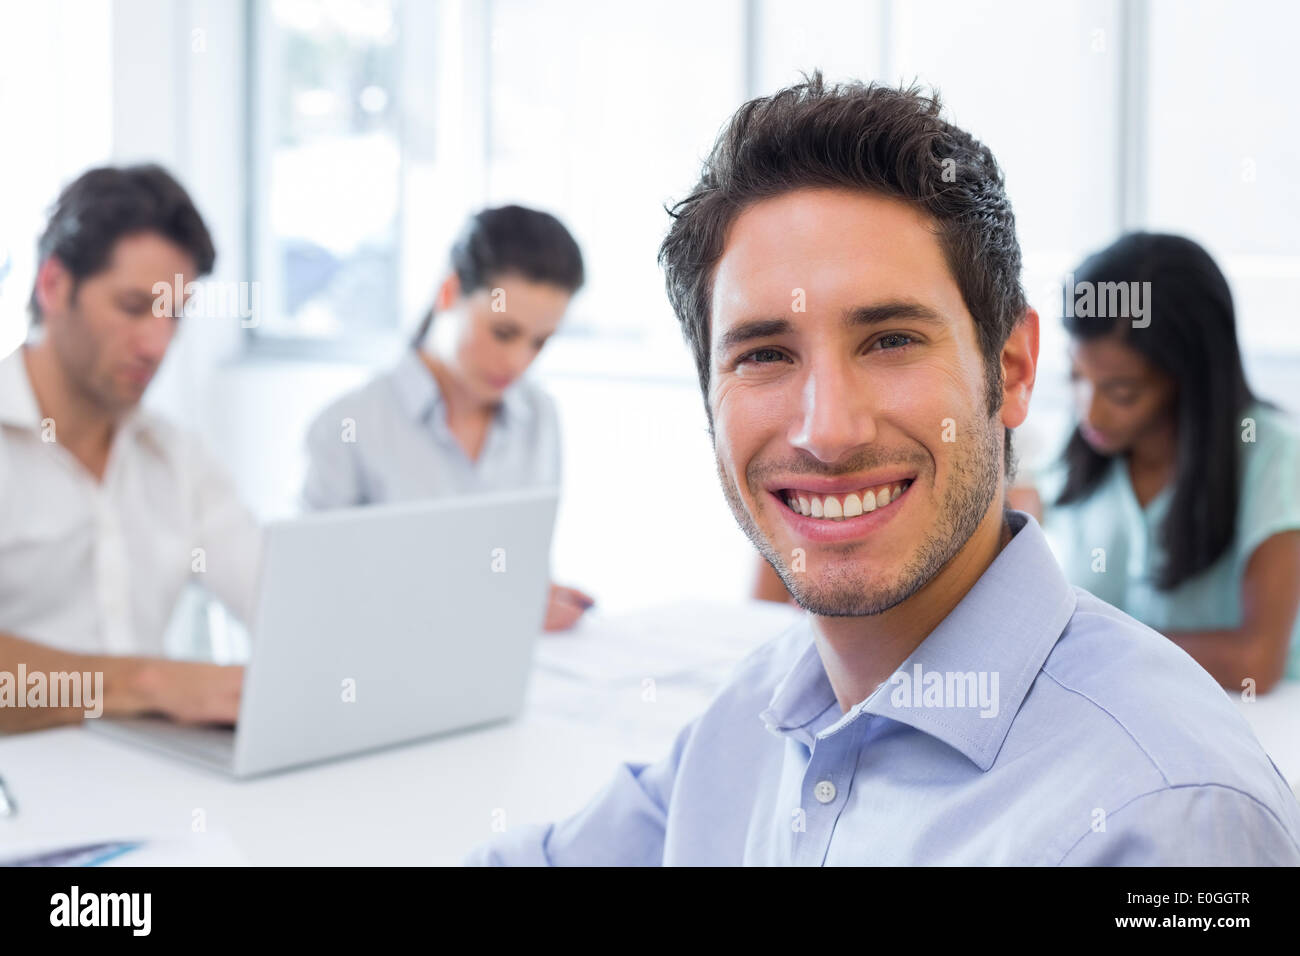 Attractive businessman smiling in the workplace - Stock Image